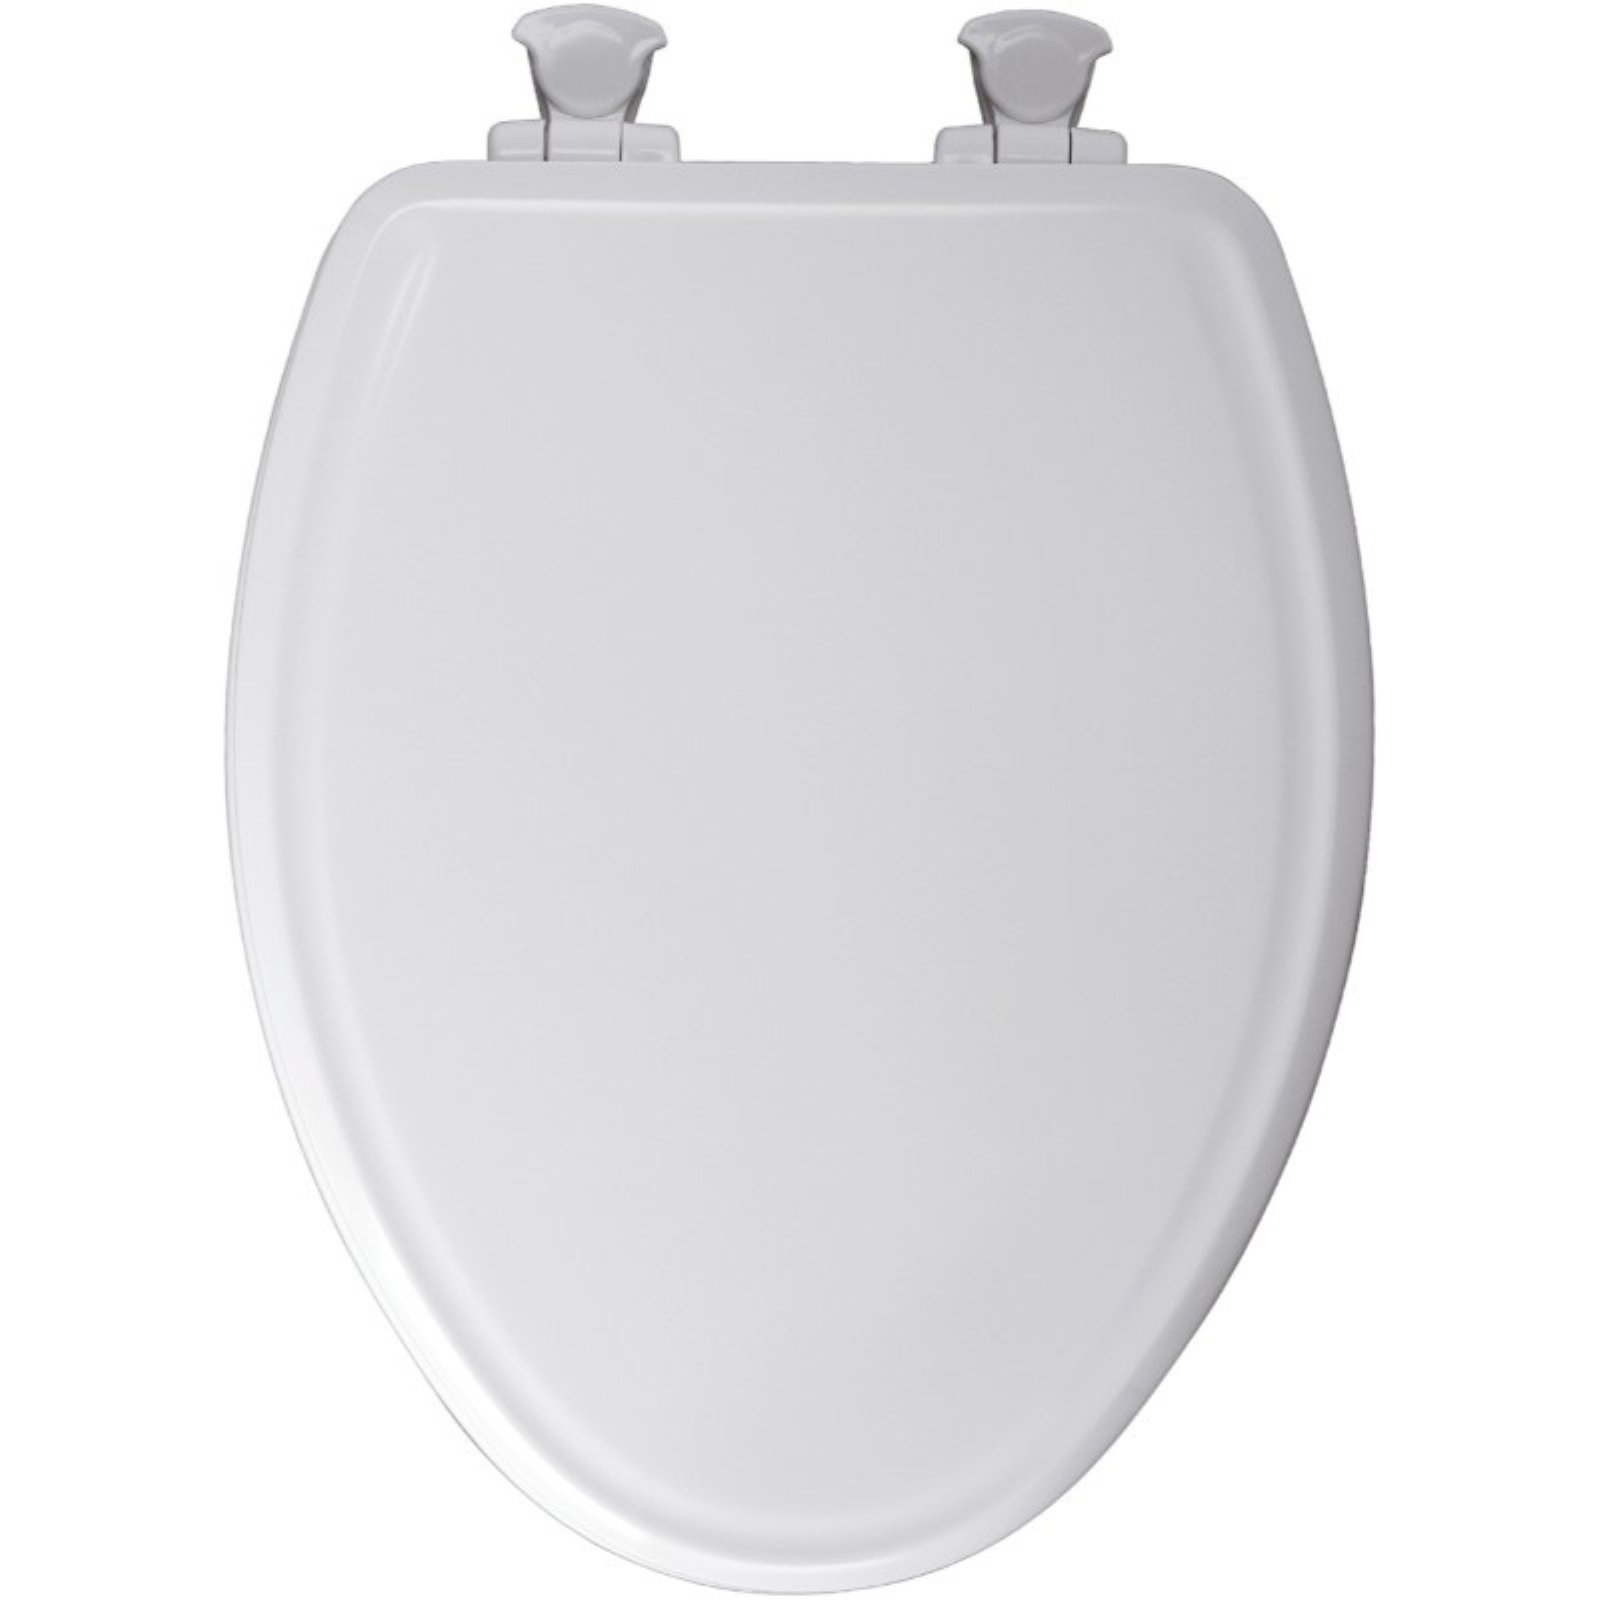 Outstanding Mayfair Bemis 148Slowa 000 Designer Molded Wood Toilet Seat Gmtry Best Dining Table And Chair Ideas Images Gmtryco